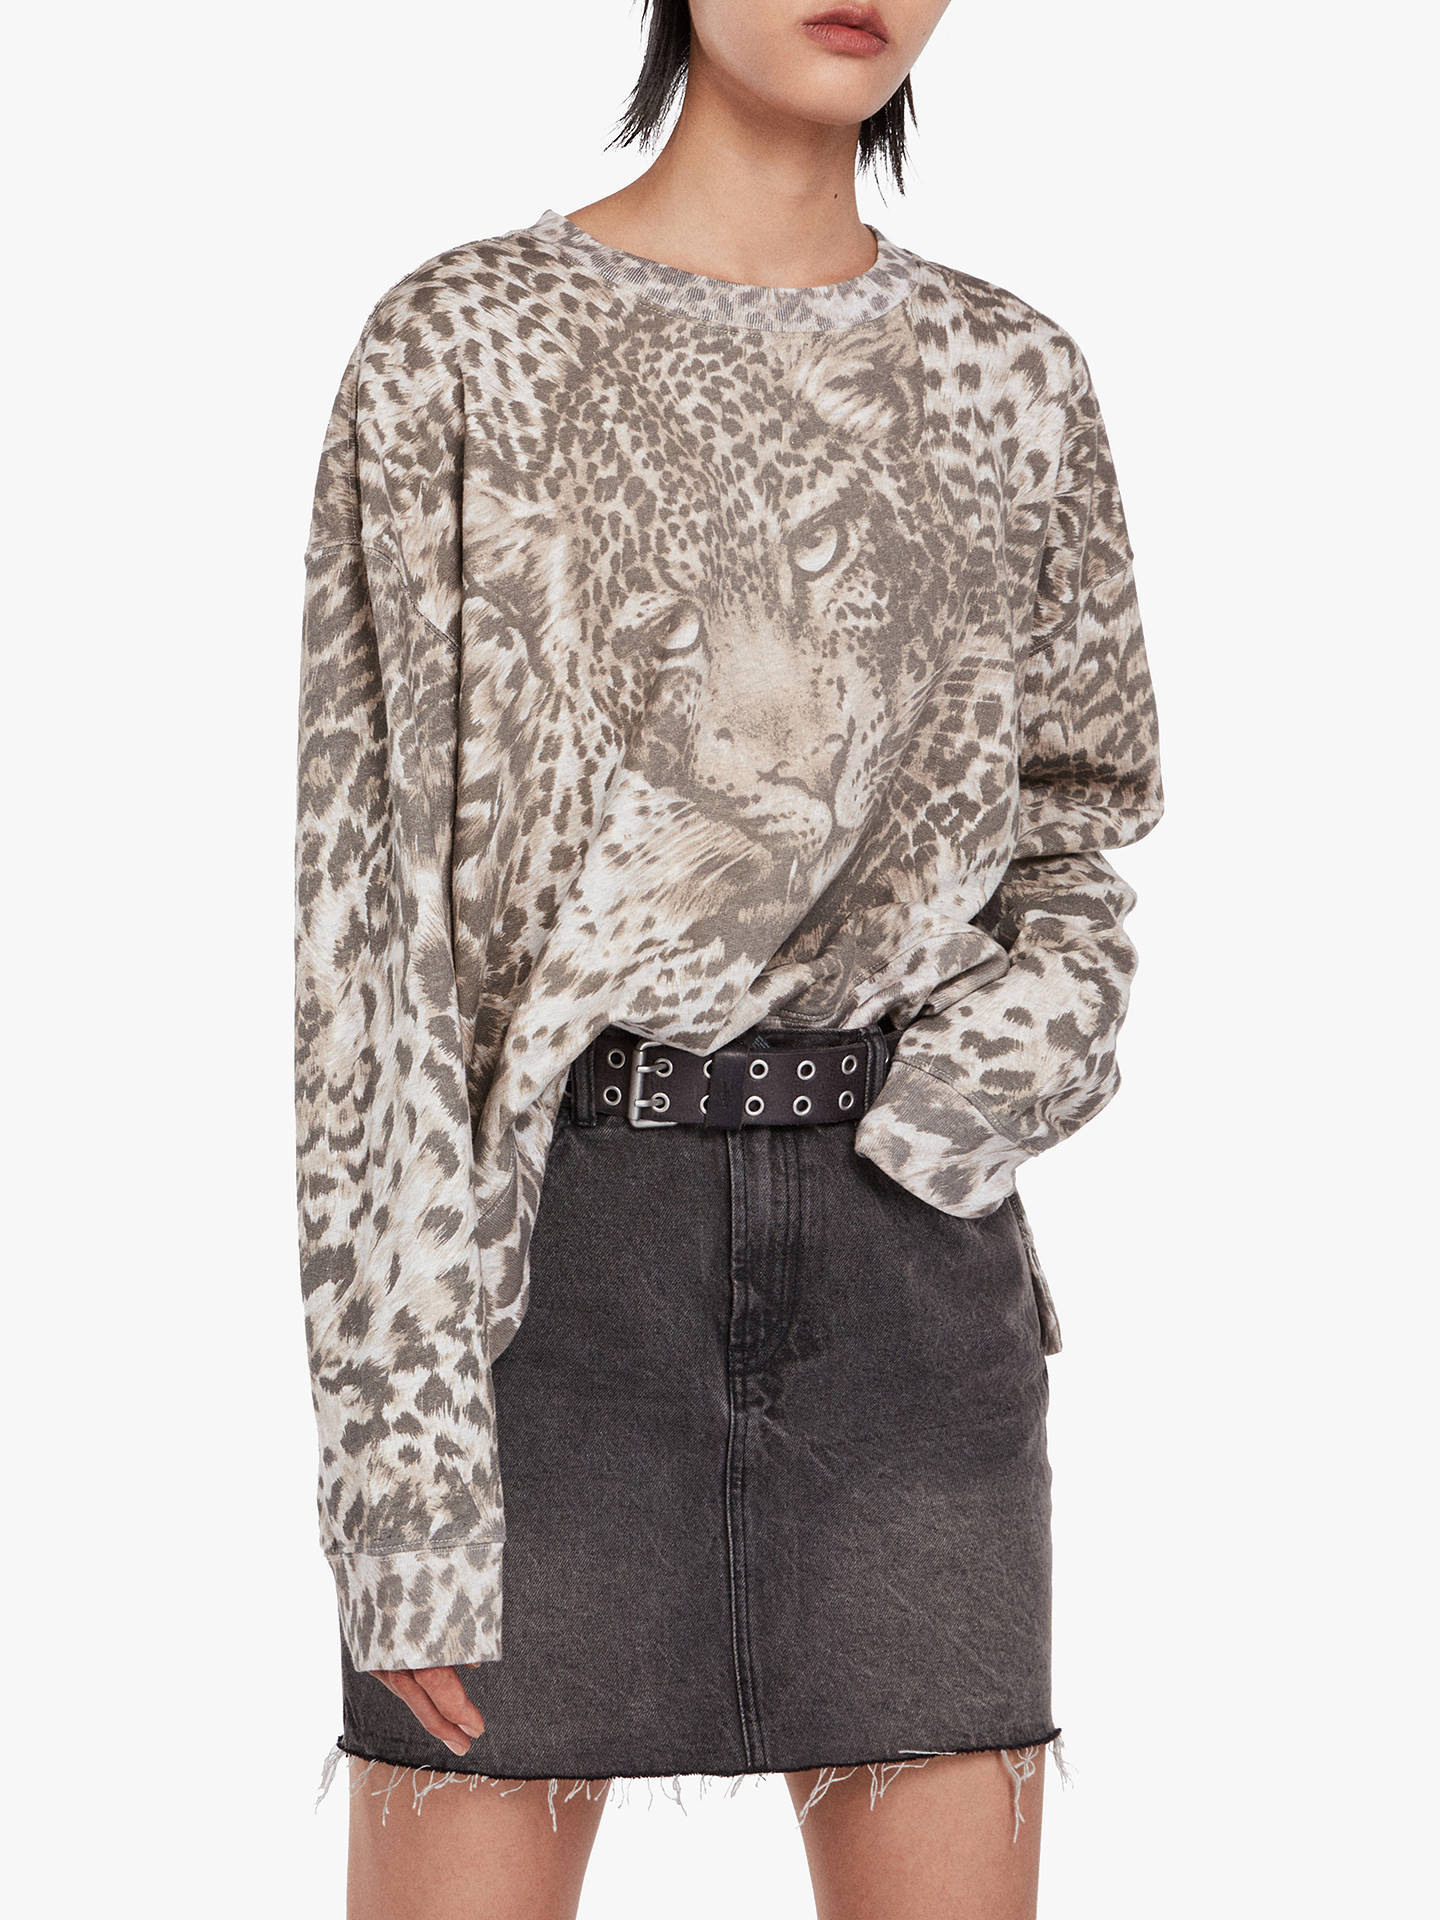 BuyAllSaints Pardos Animal Sweatshirt, Marl Grey, M Online at johnlewis.com